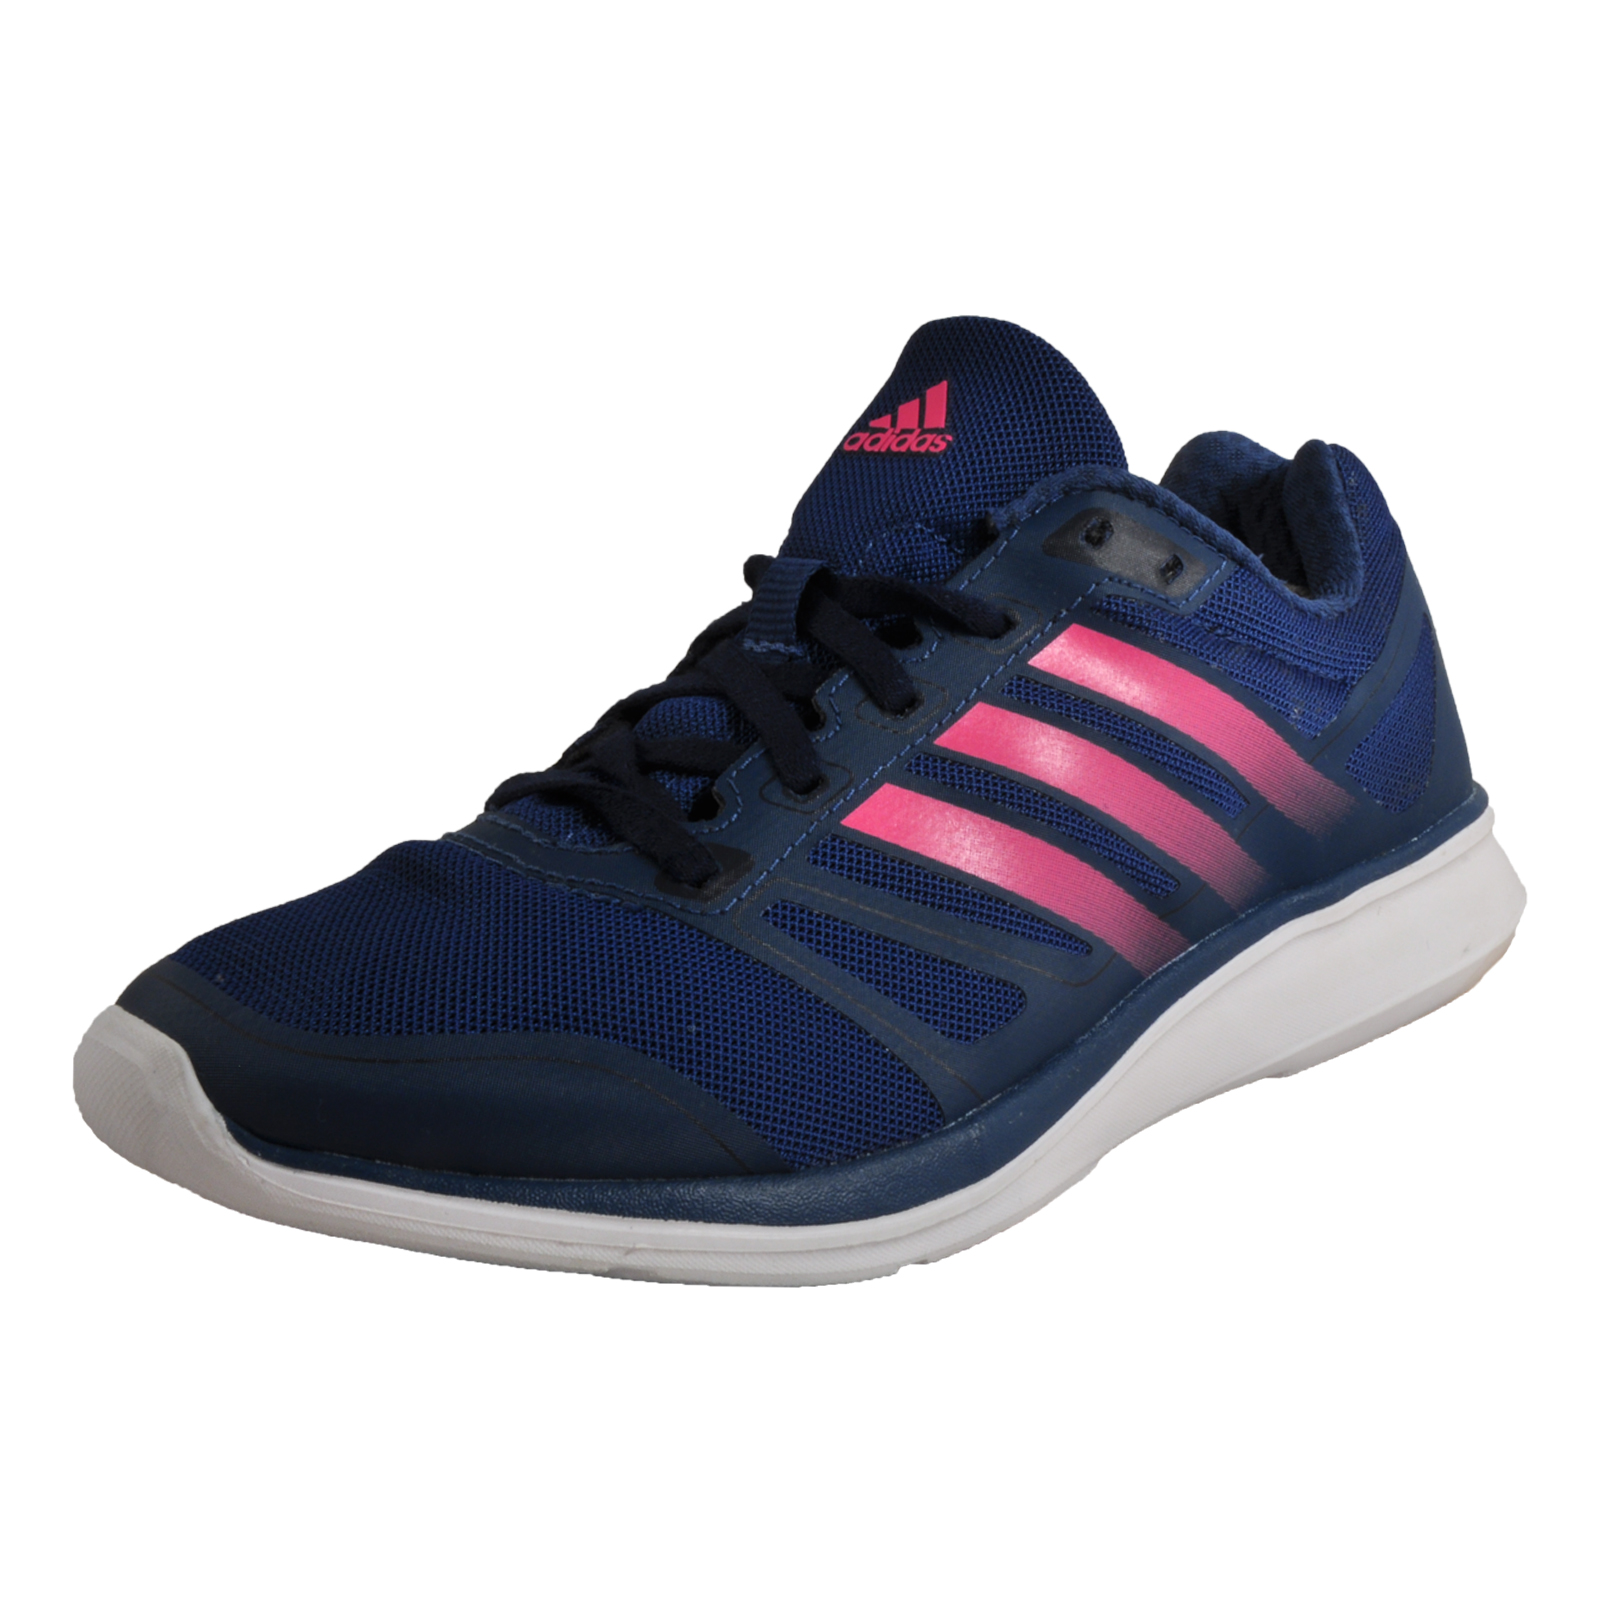 9369089c70af9 Details about Adidas Lite Speedster 3 Women s Running Shoes Fitness Gym  Trainers Navy